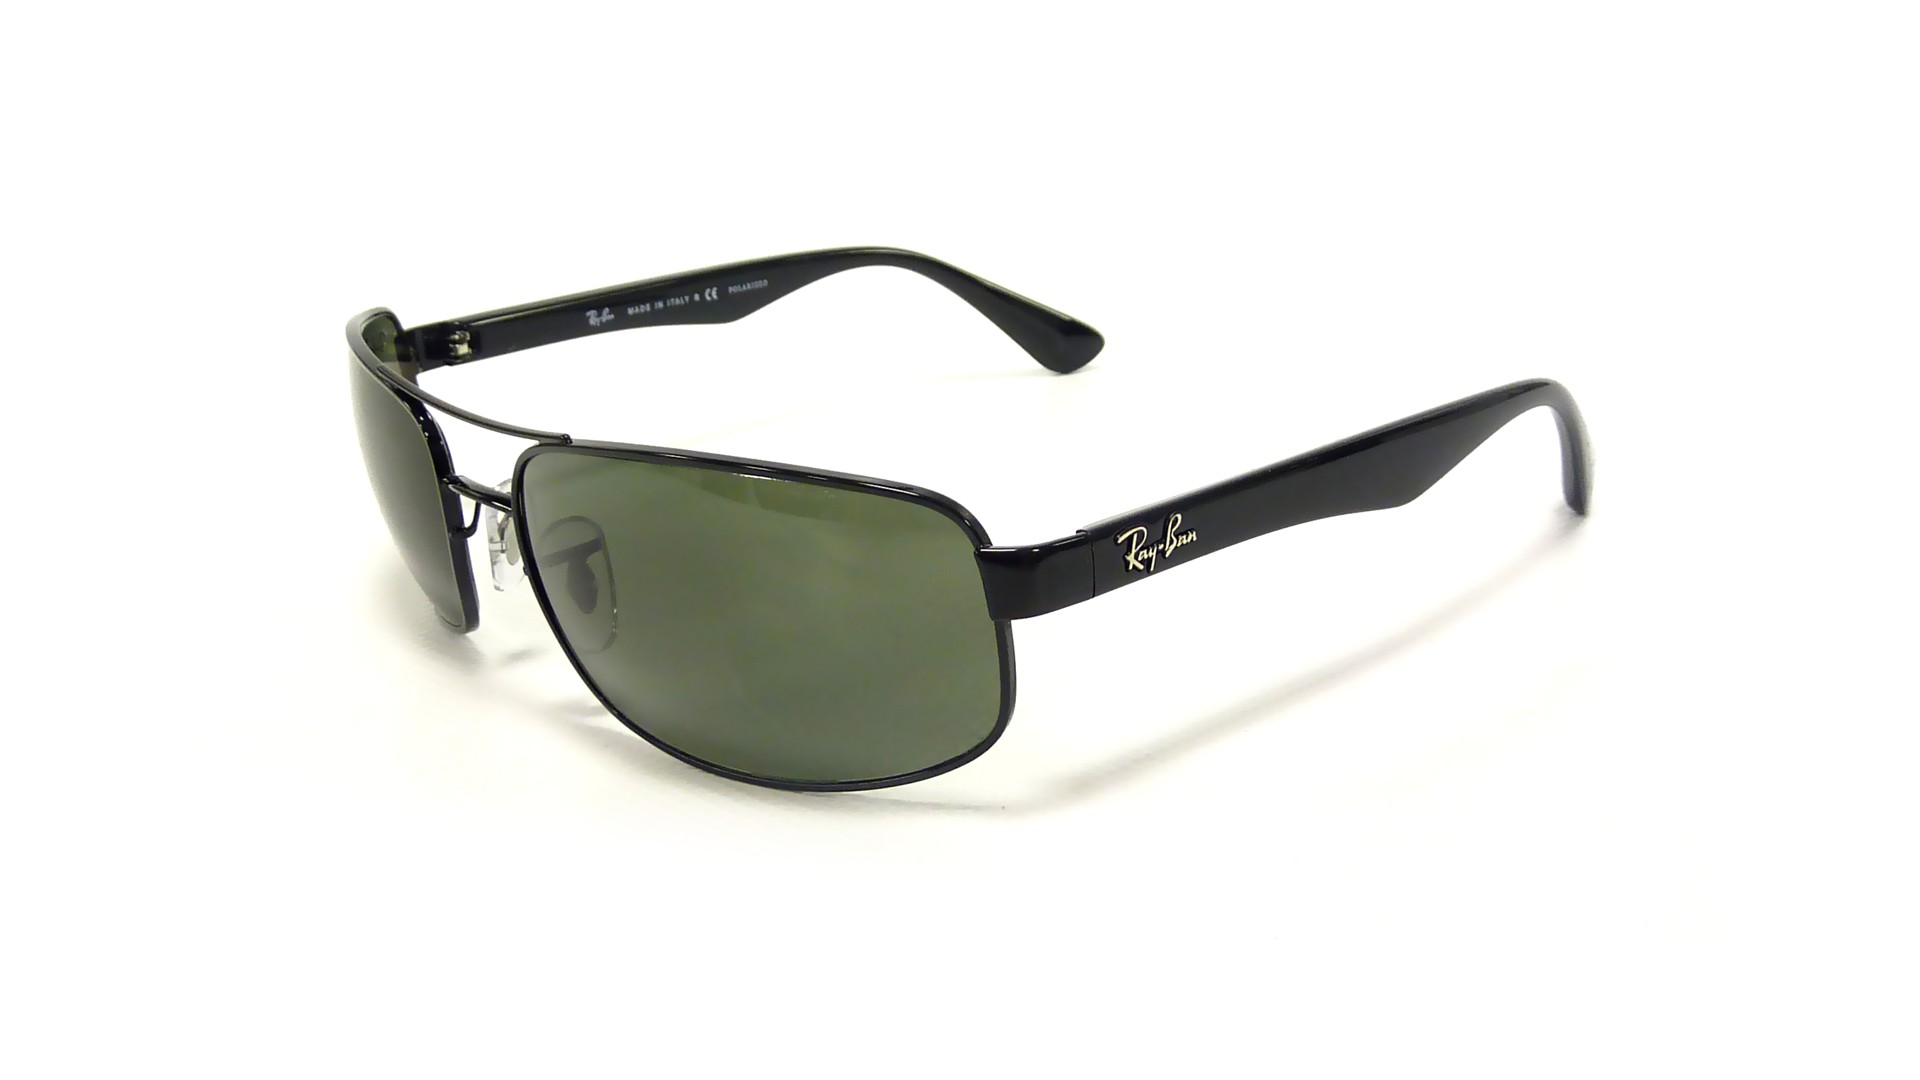 a97262f71a40f Ray Ban Rb3445 002